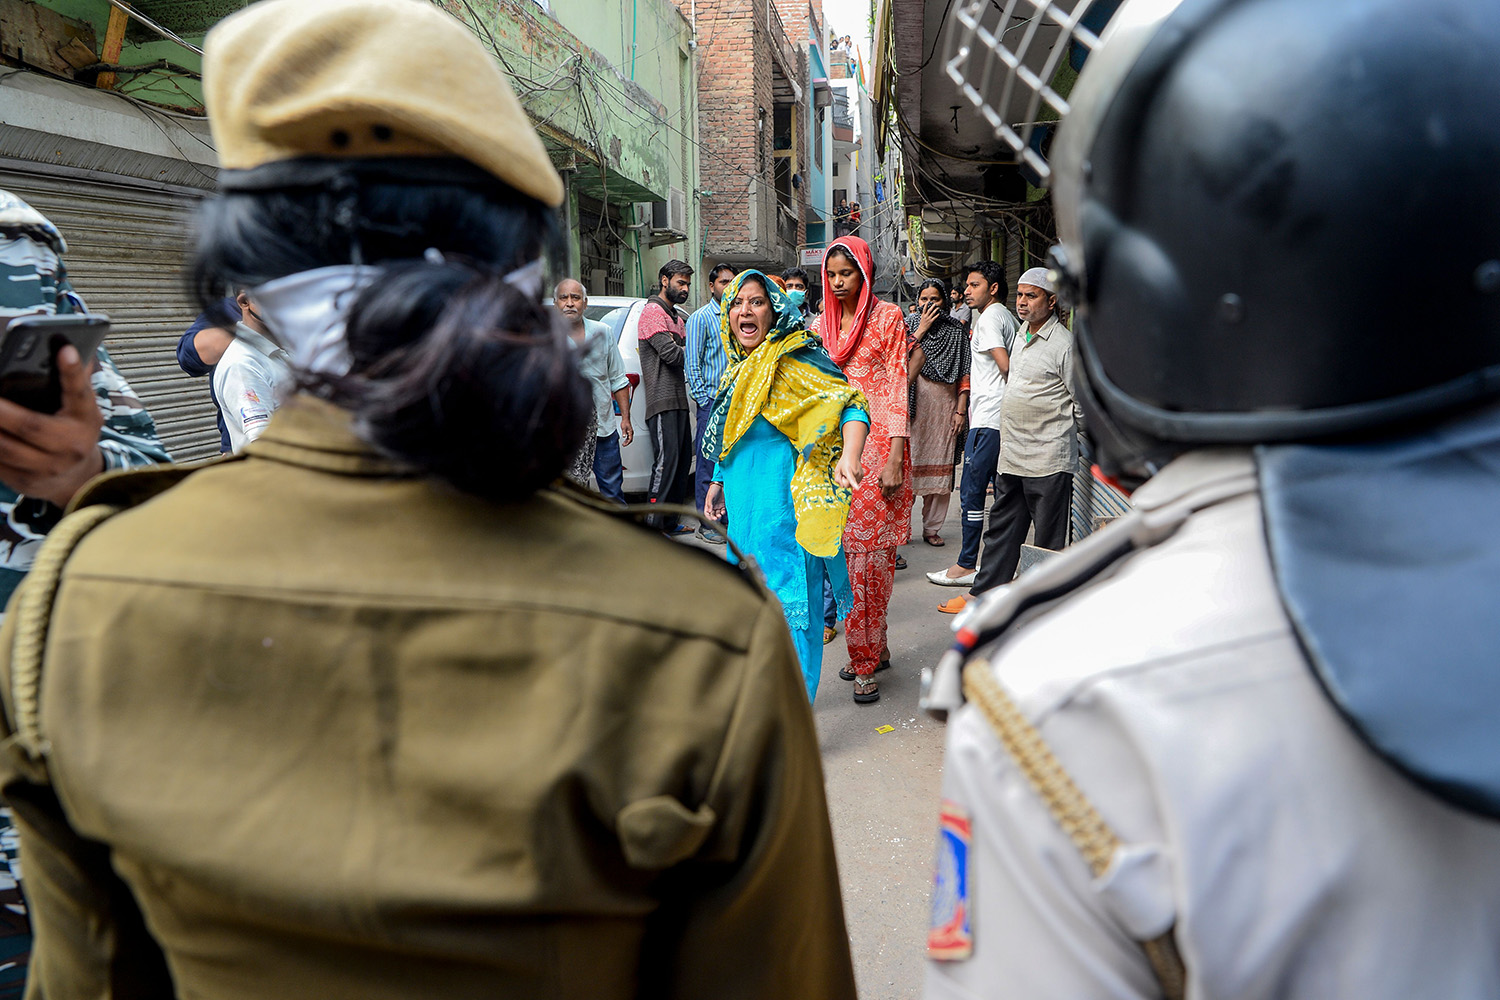 A woman shouts at security personnel patrolling the streets in the Shaheen Bagh neighborhood of New Delhi on March 24 after they removed demonstrators who were protesting against a new citizenship law. SAJJAD HUSSAIN/AFP via Getty Images